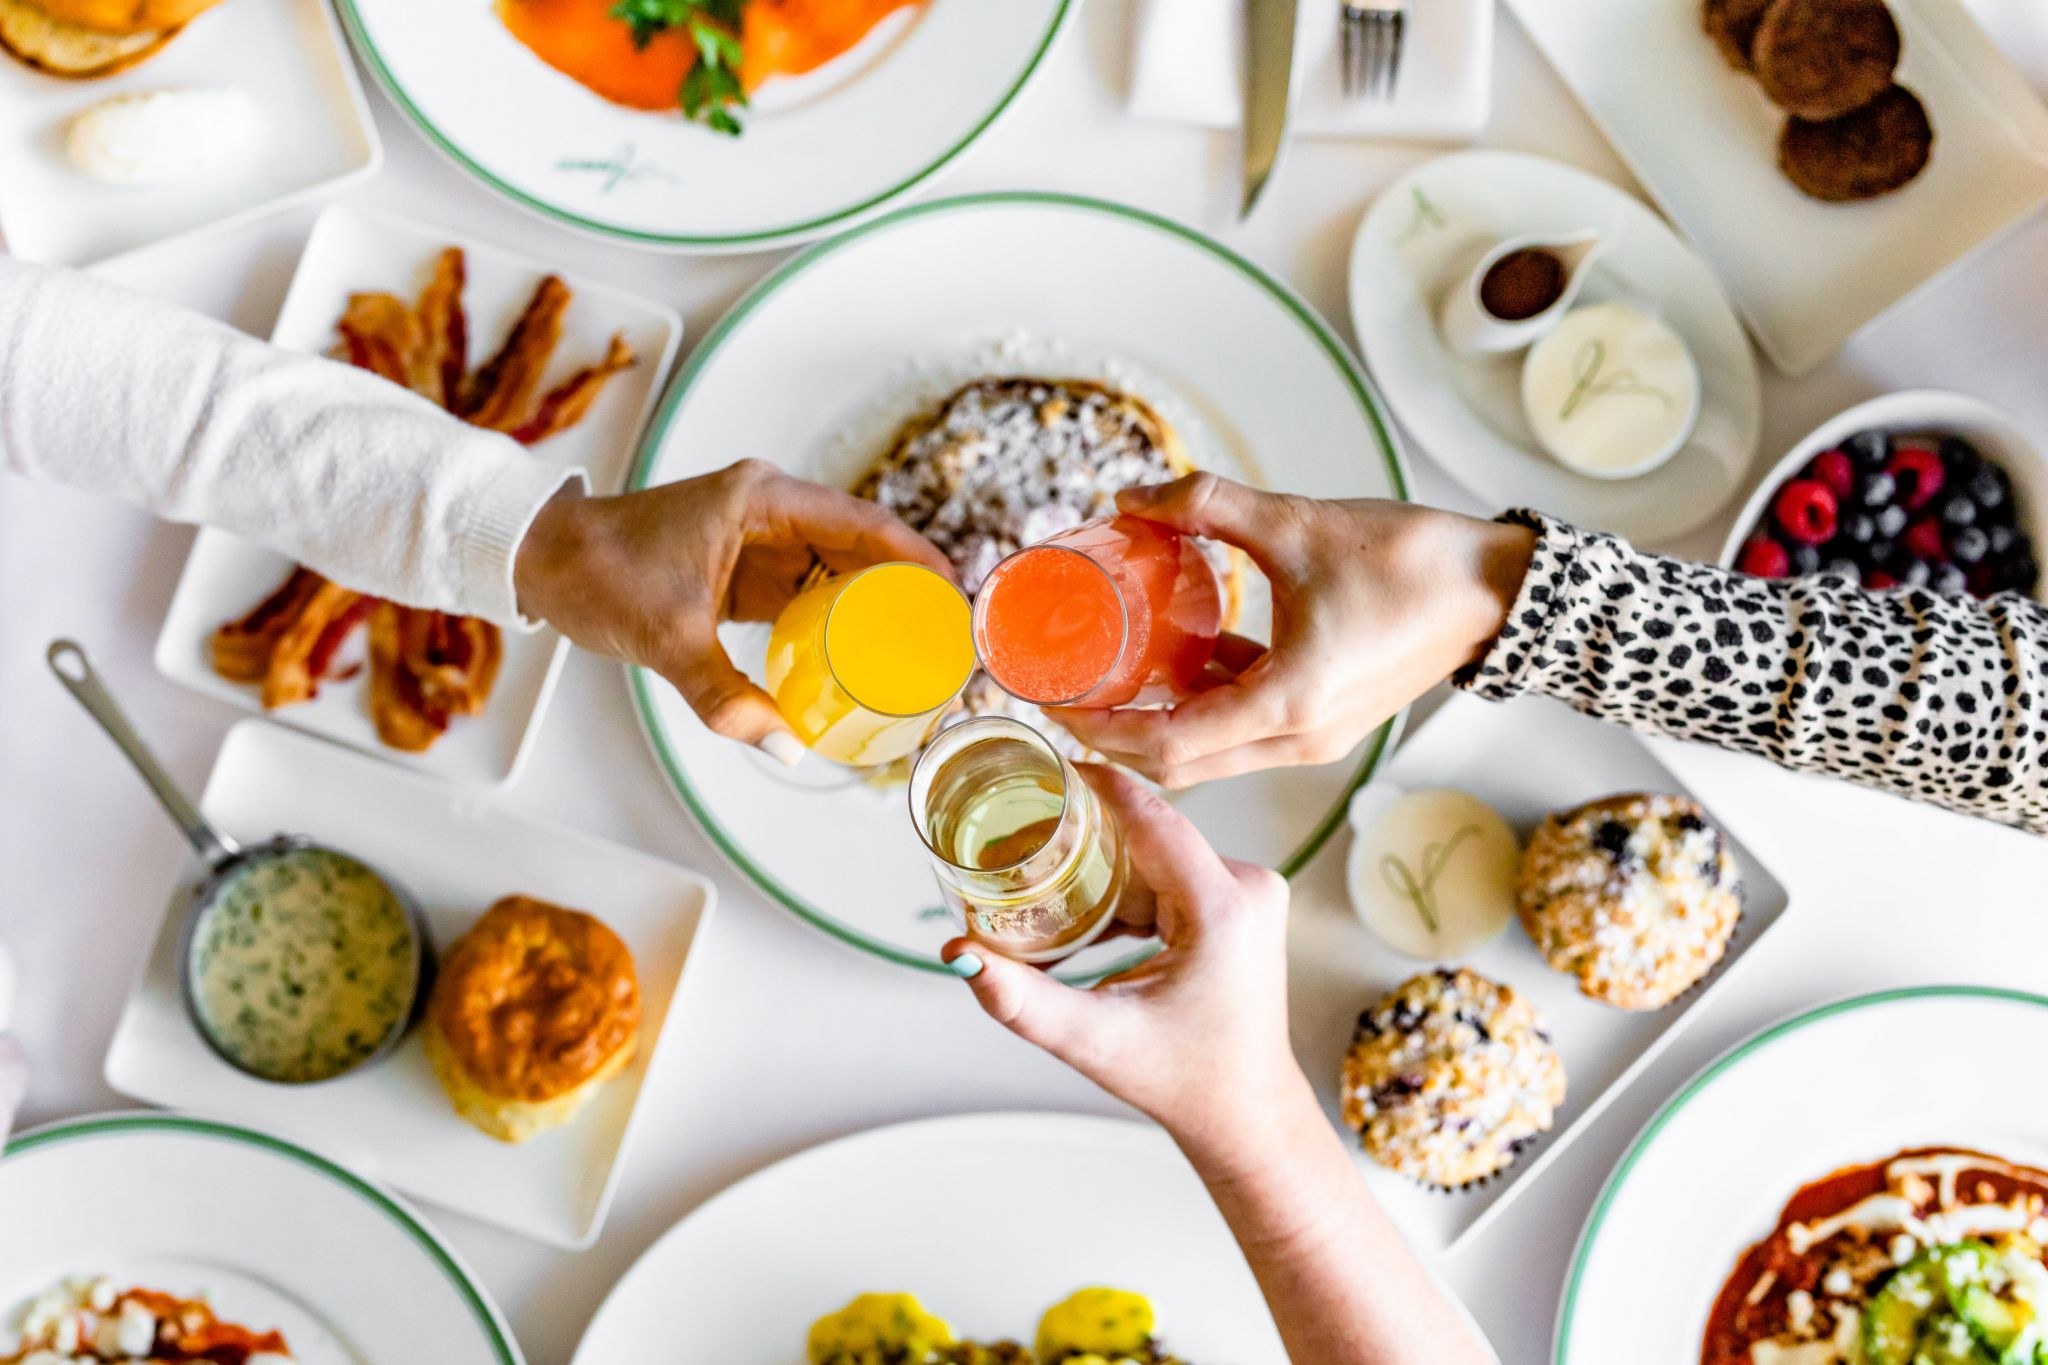 6 new Houston brunches for dine-in or takeout, from classics to unique picks